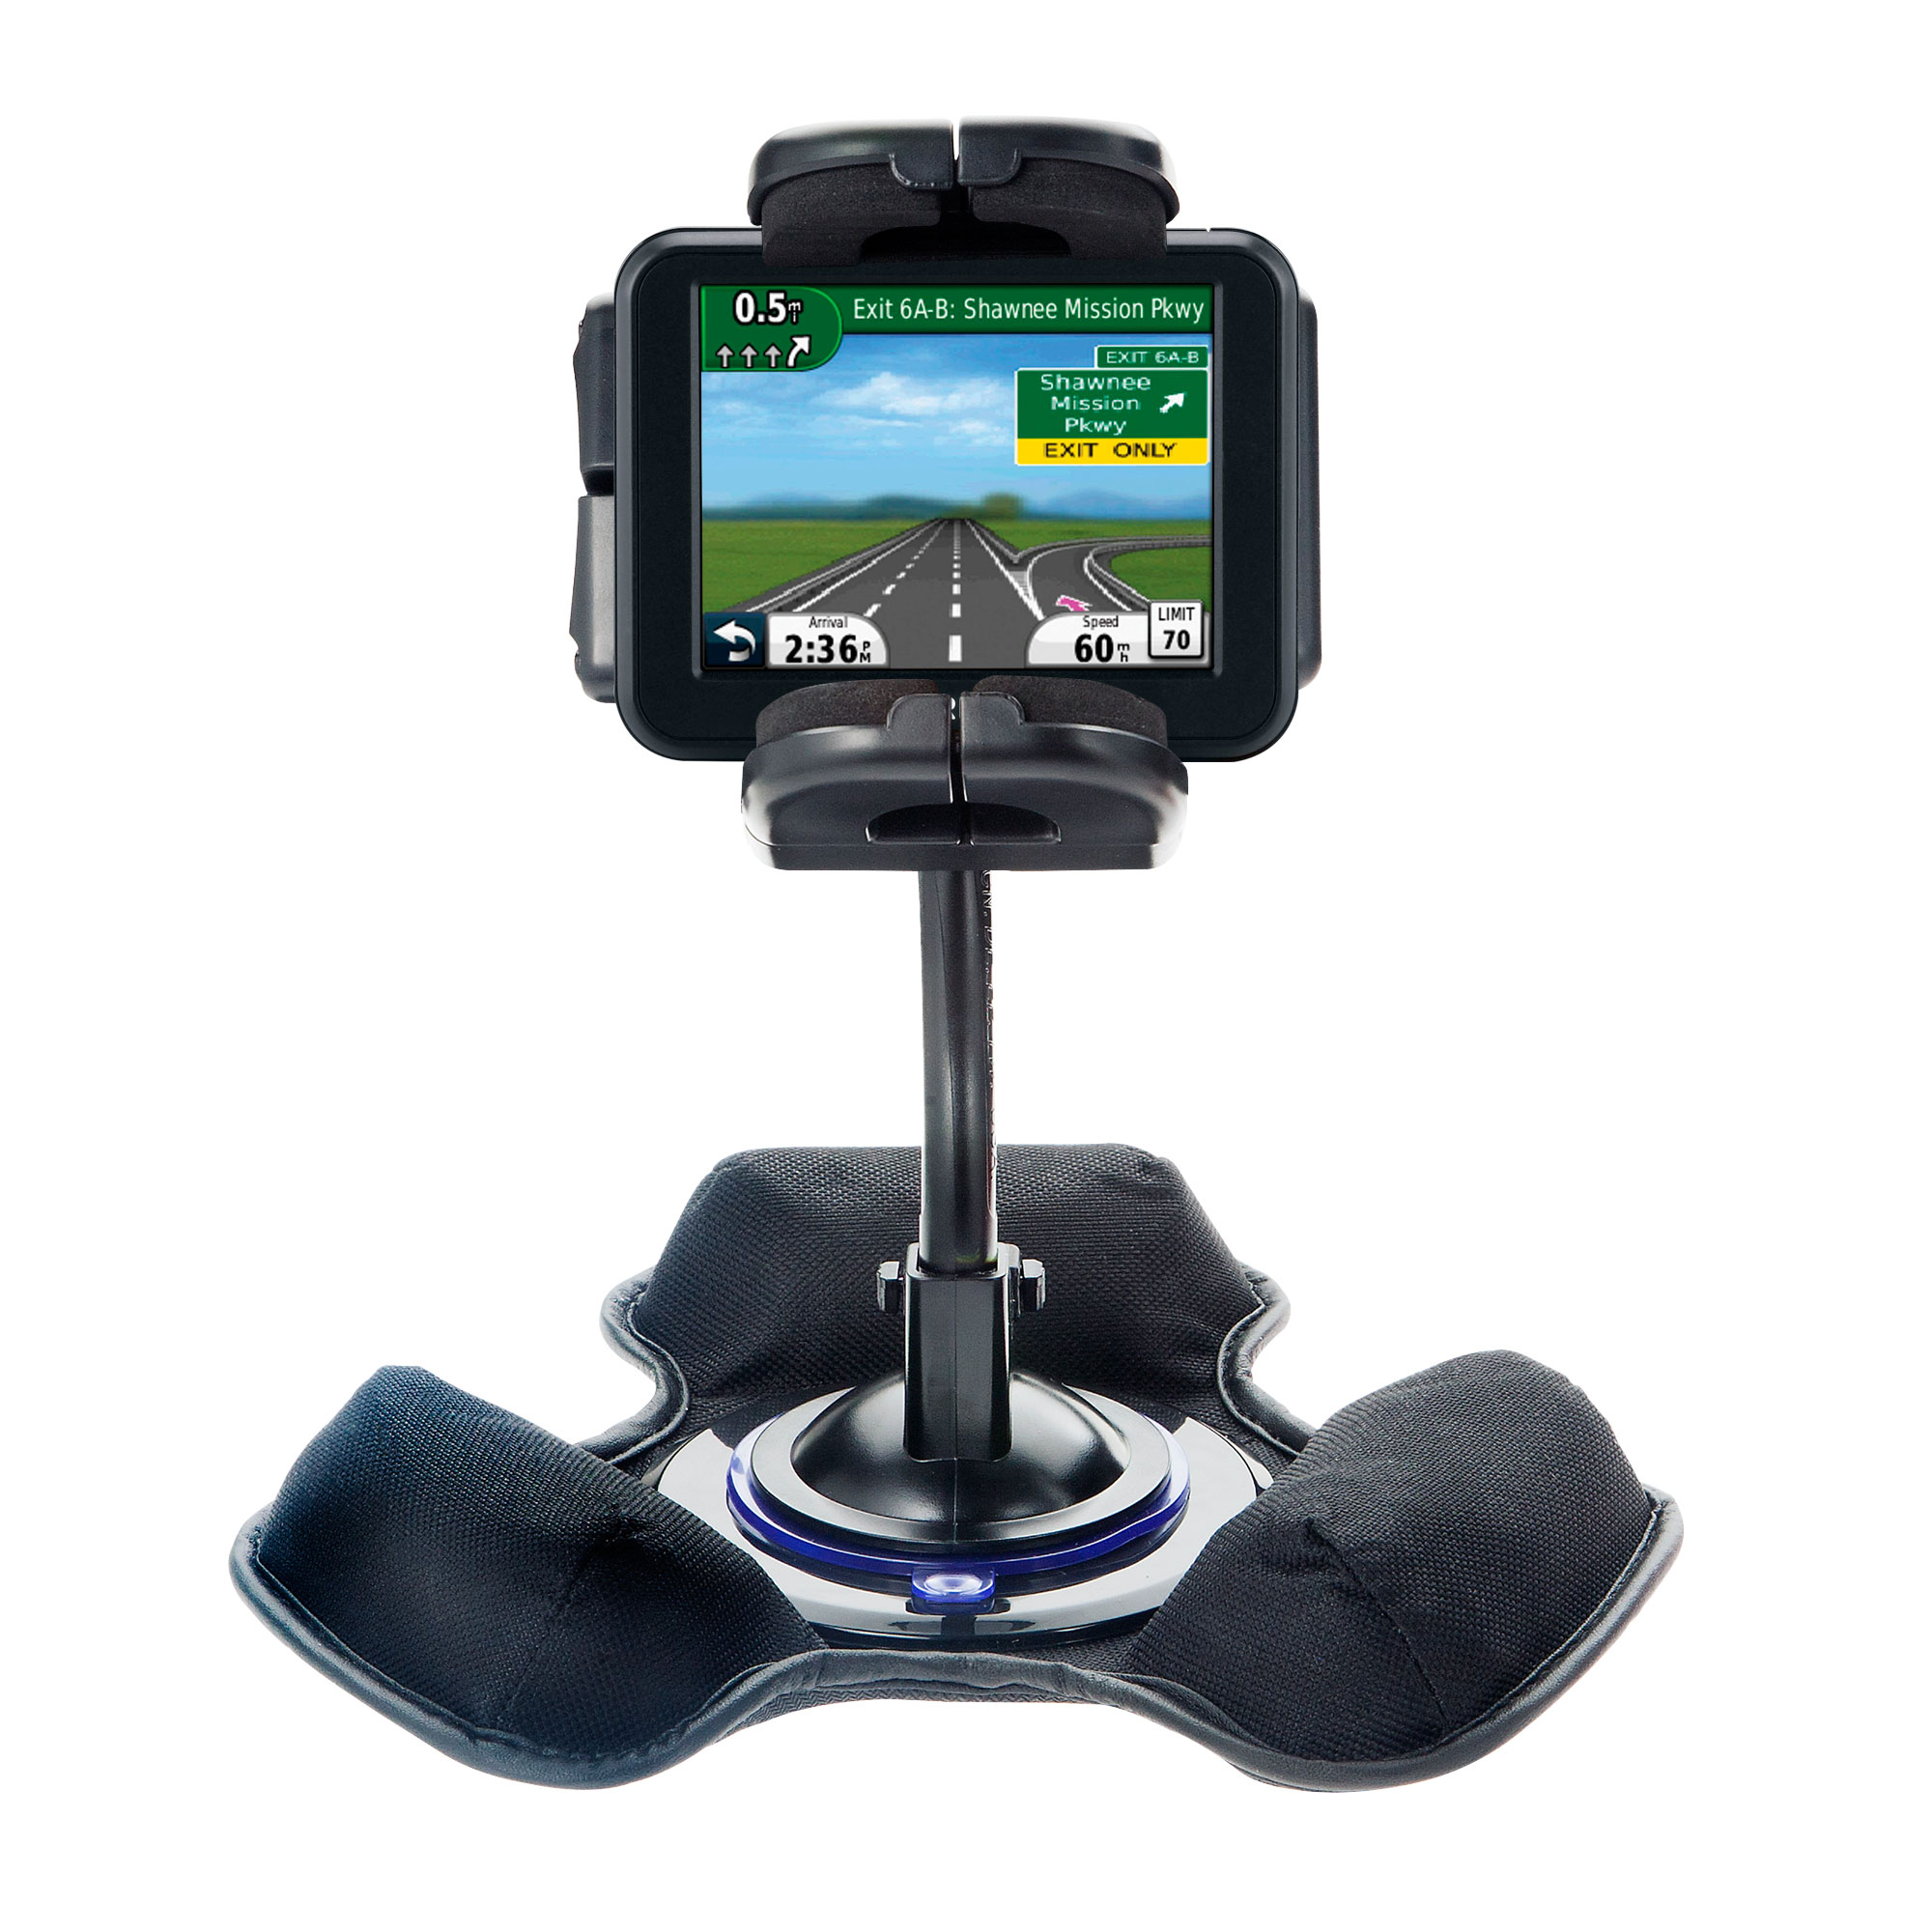 Dash and Windshield Holder compatible with the Garmin Nuvi 30